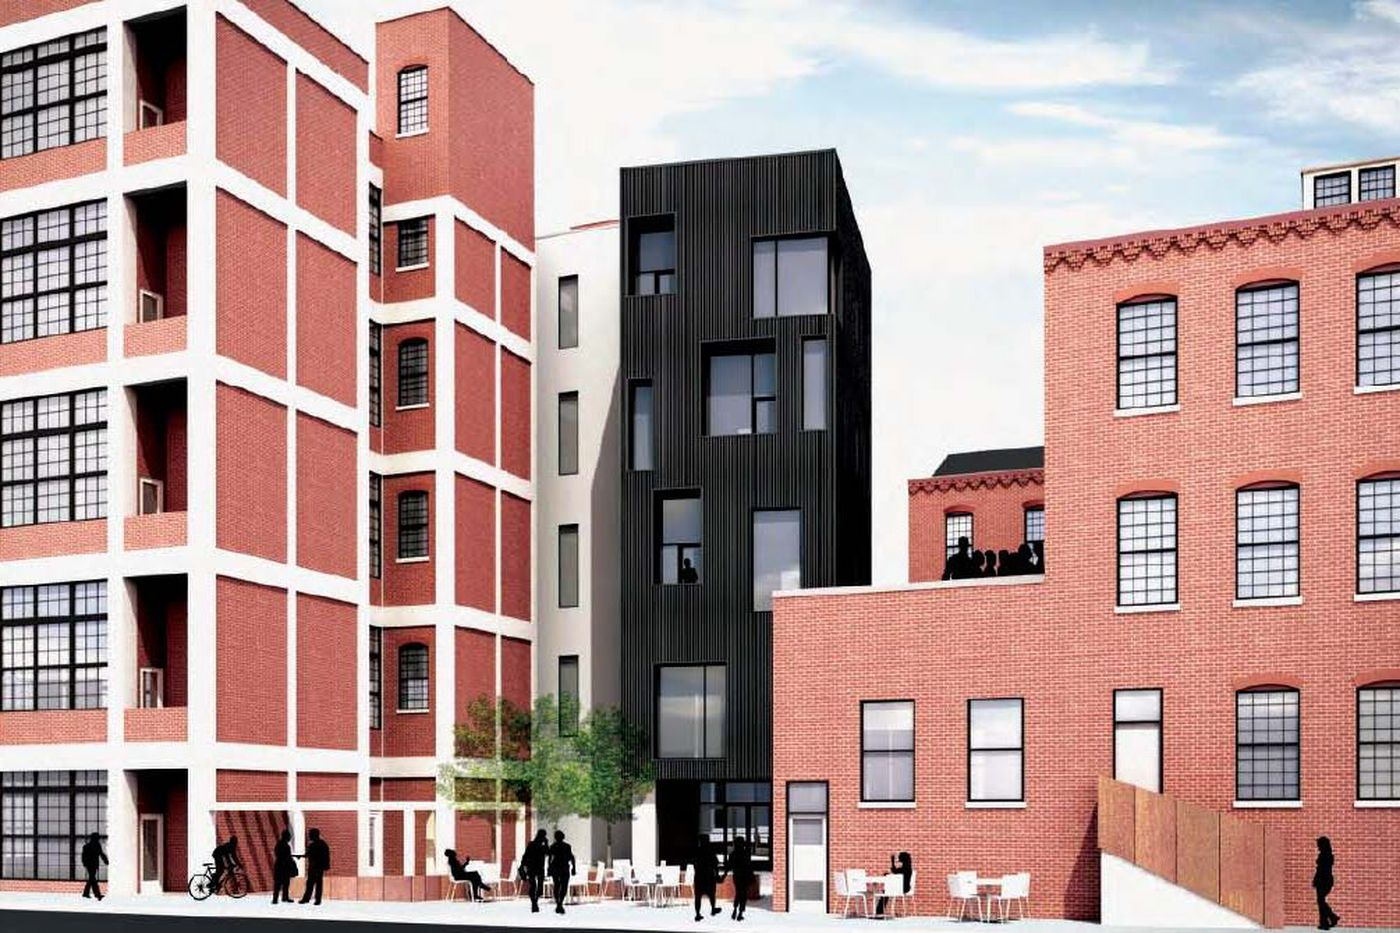 Affordable-housing developers struggle to stay one step ahead of gentrification in Philadelphia   Inga Saffron